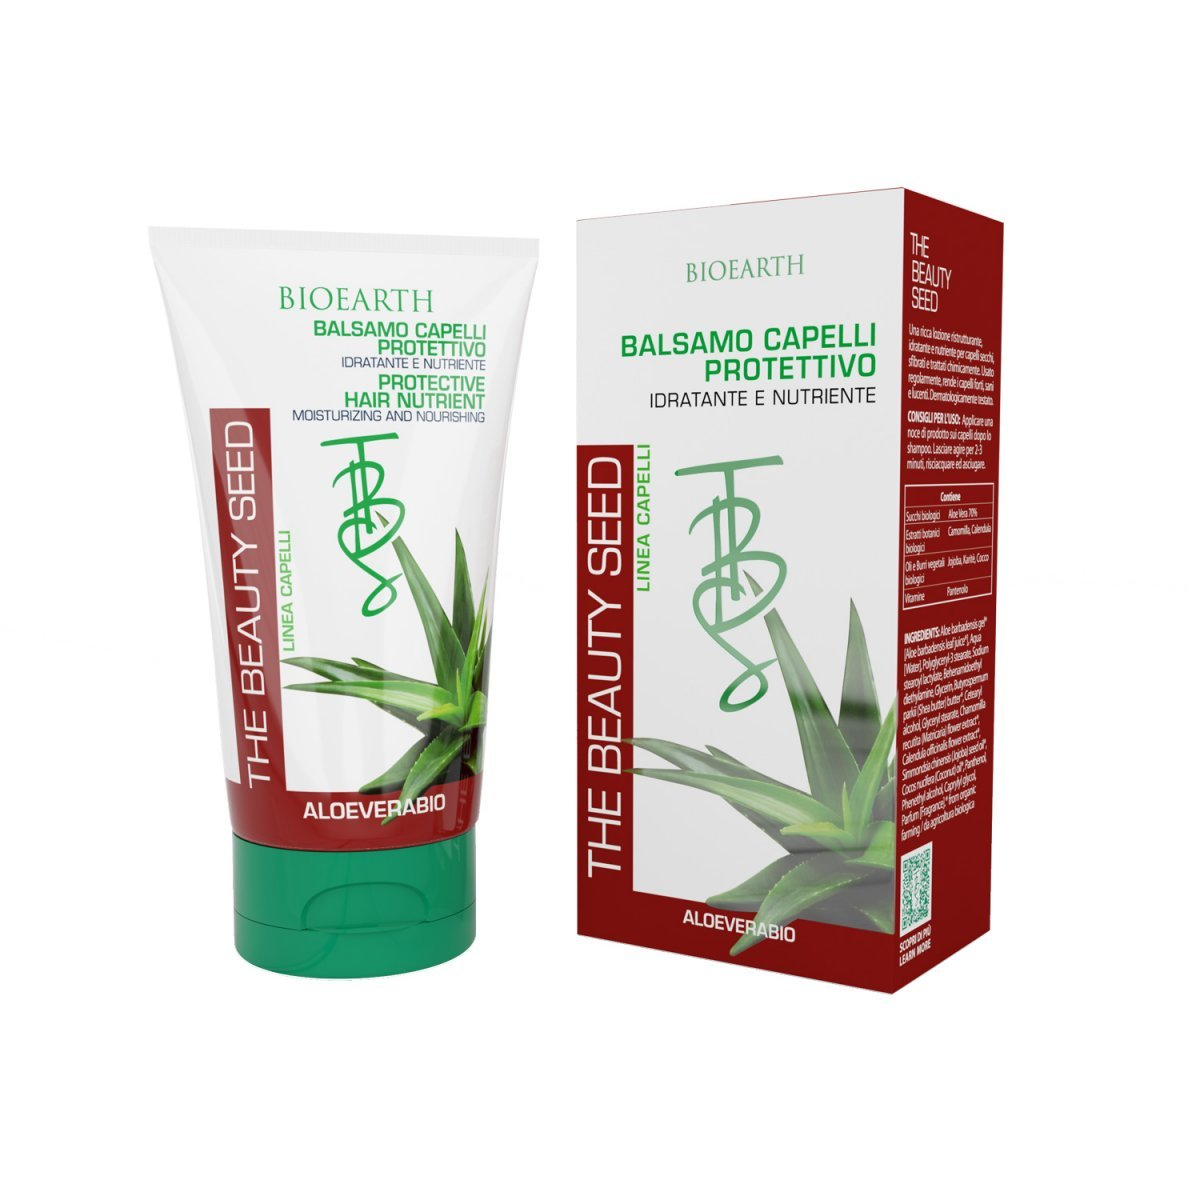 The Beauty Seed Protective Hair Nutrient with Aloe